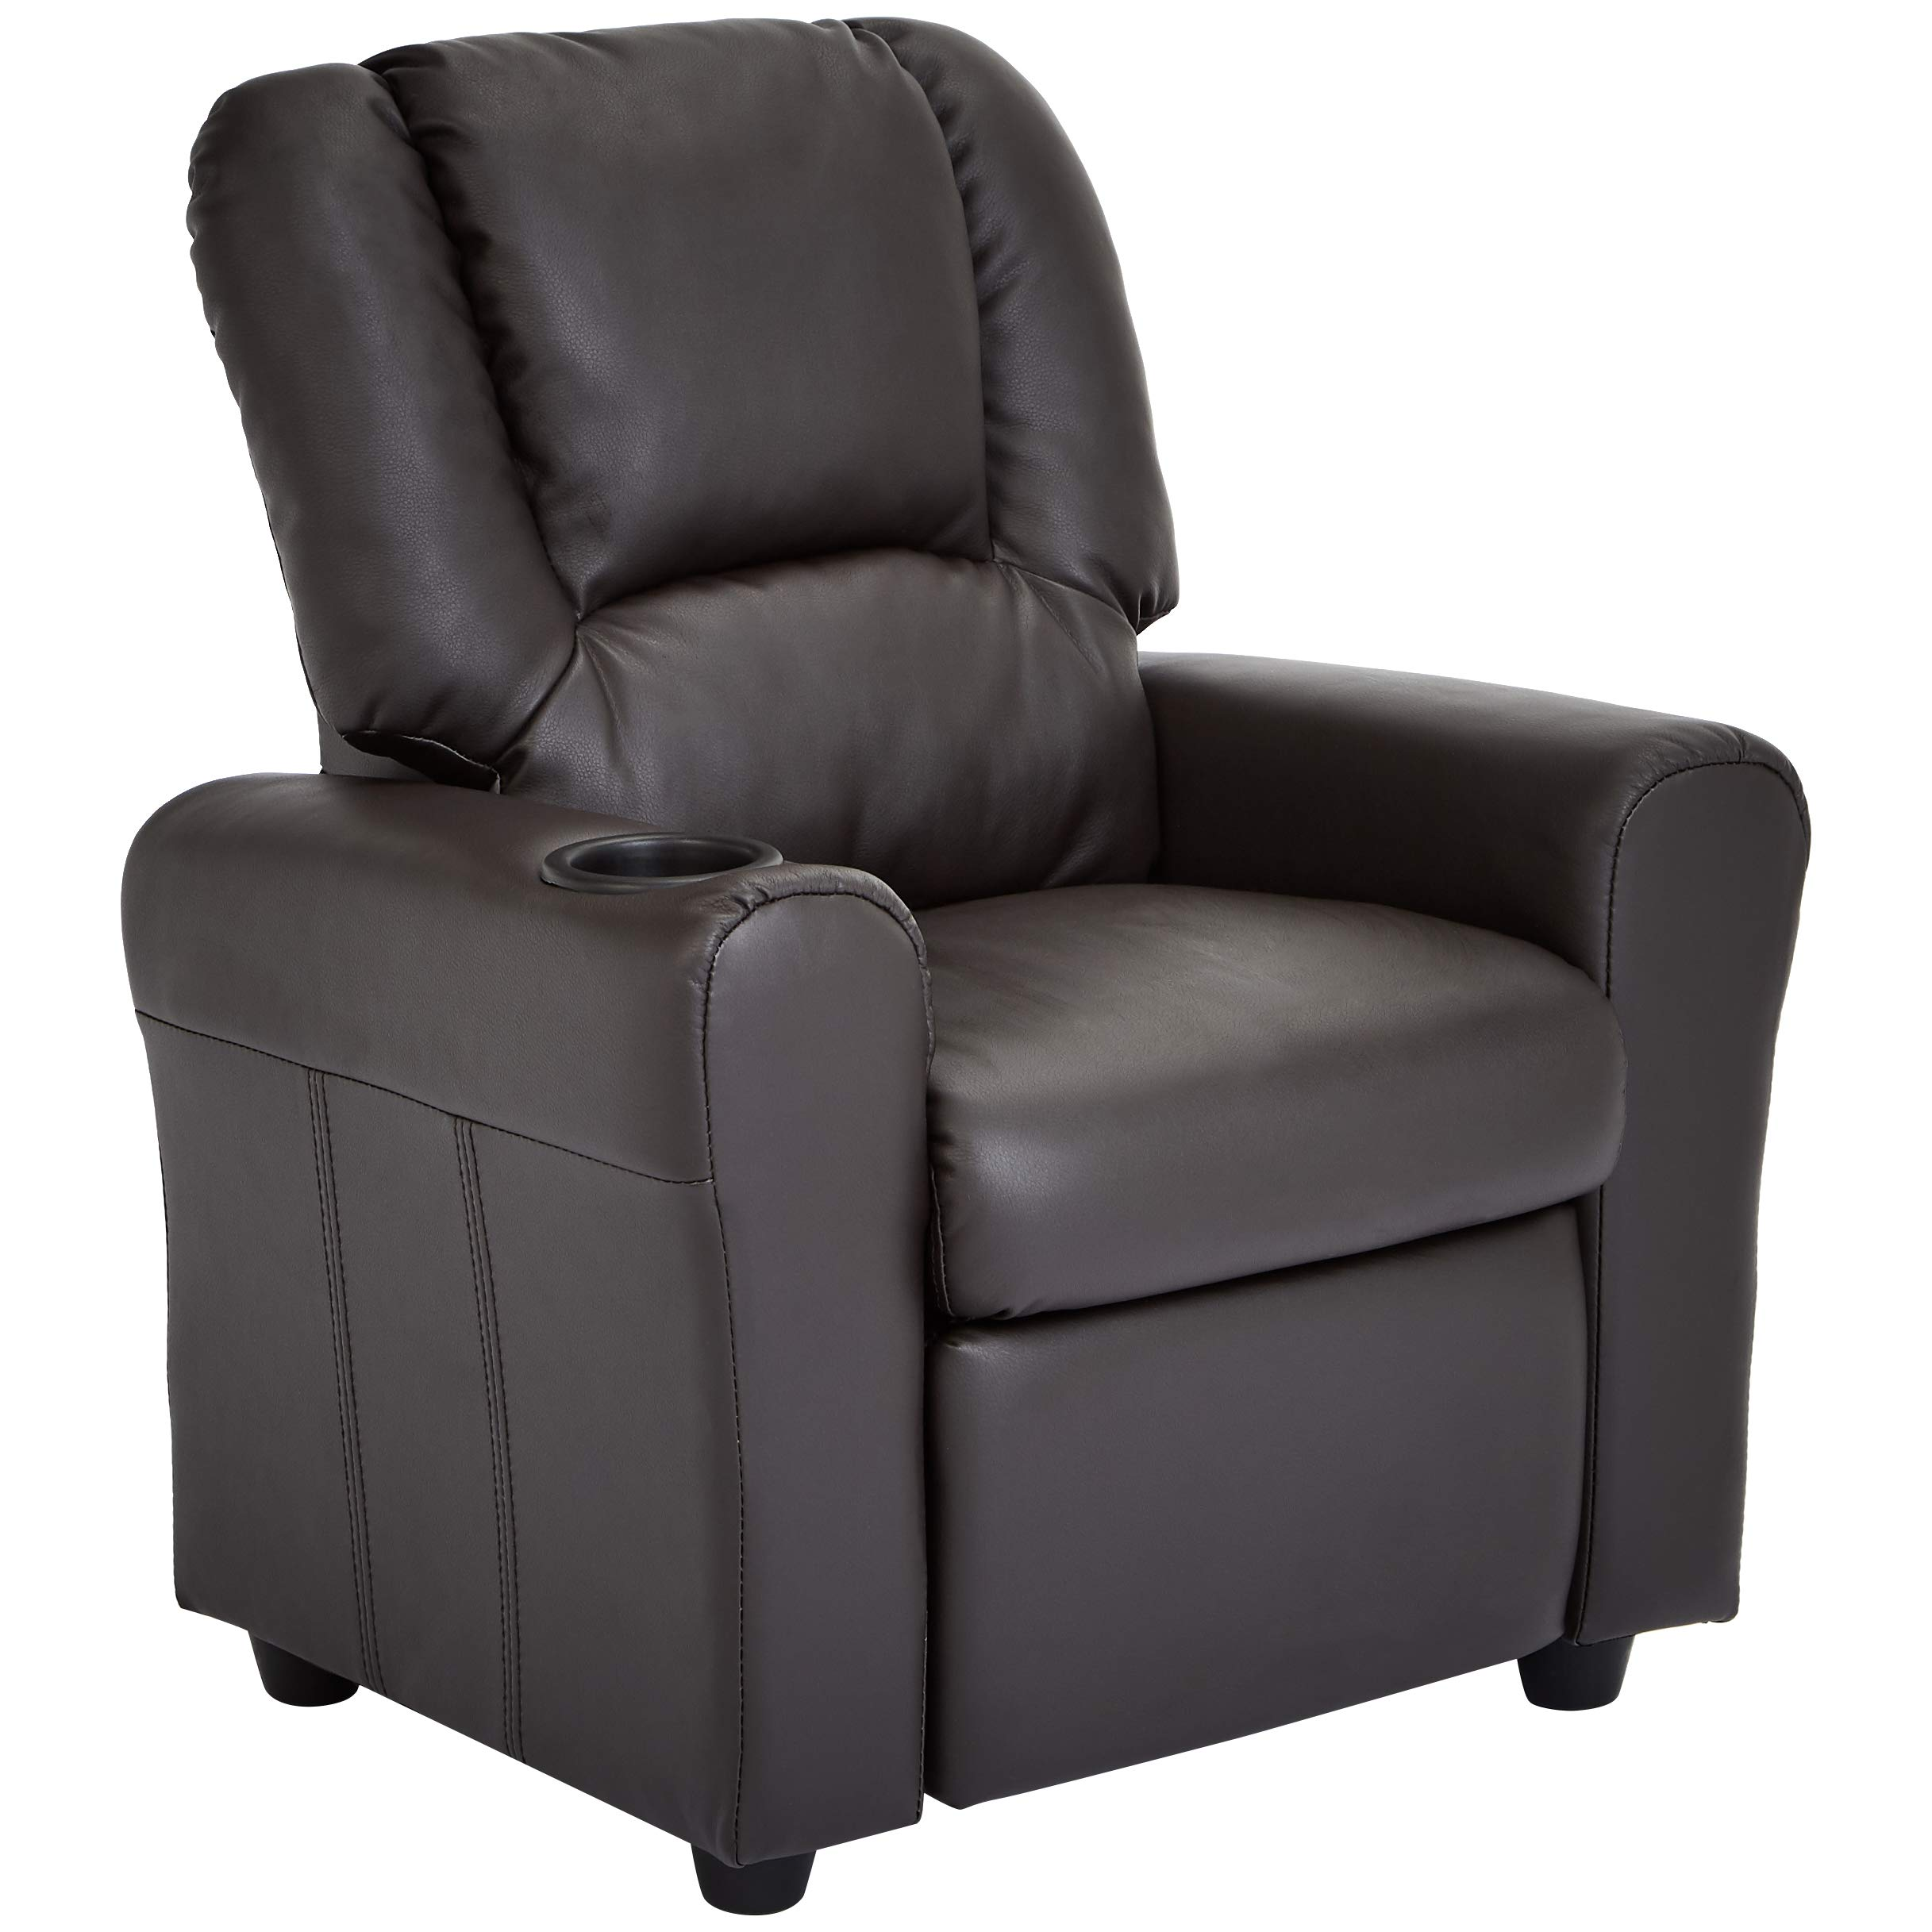 JC Home Bilbao Kids Recliner with Cup Holder and Headrest, Mocha Brown by JC Home